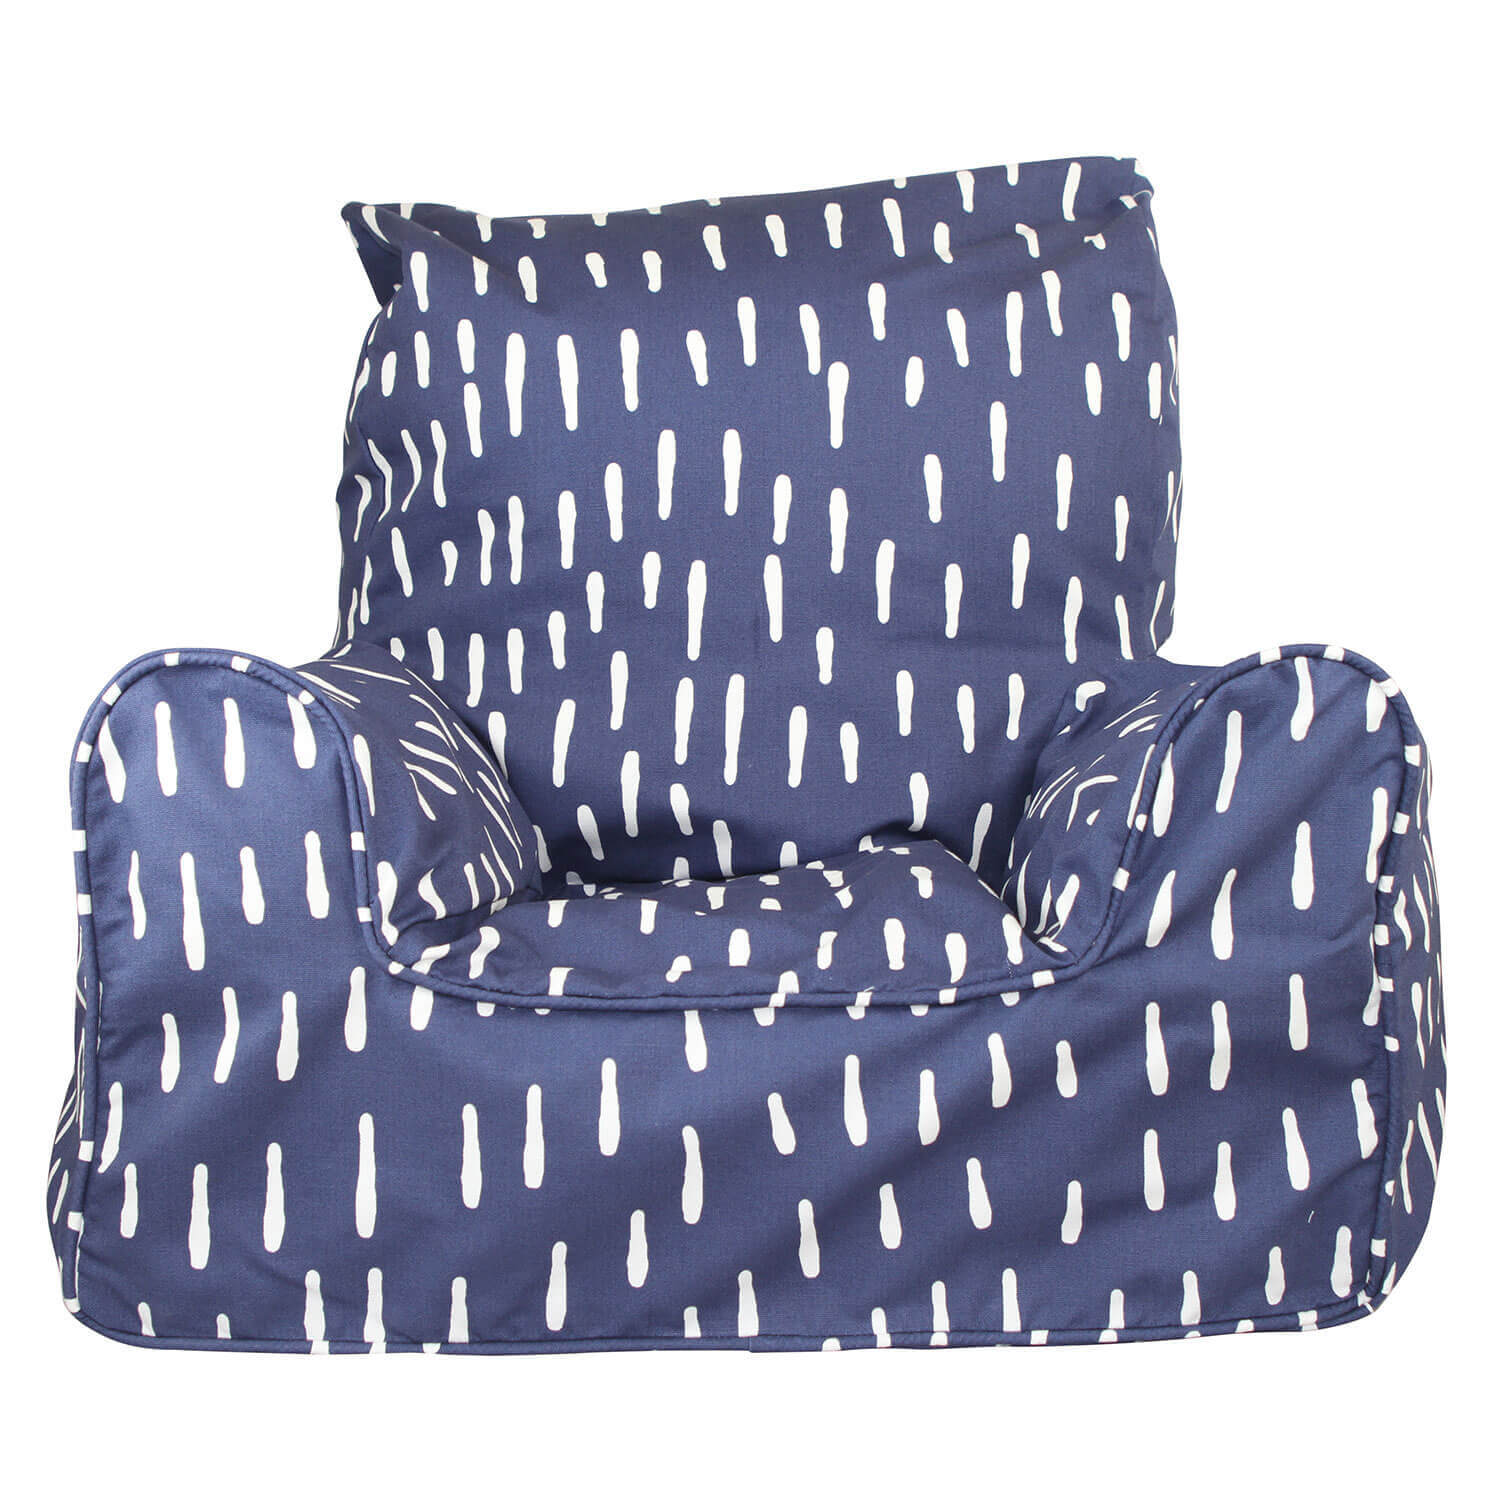 Indigo Raindrops Chair Bean Bags Australia